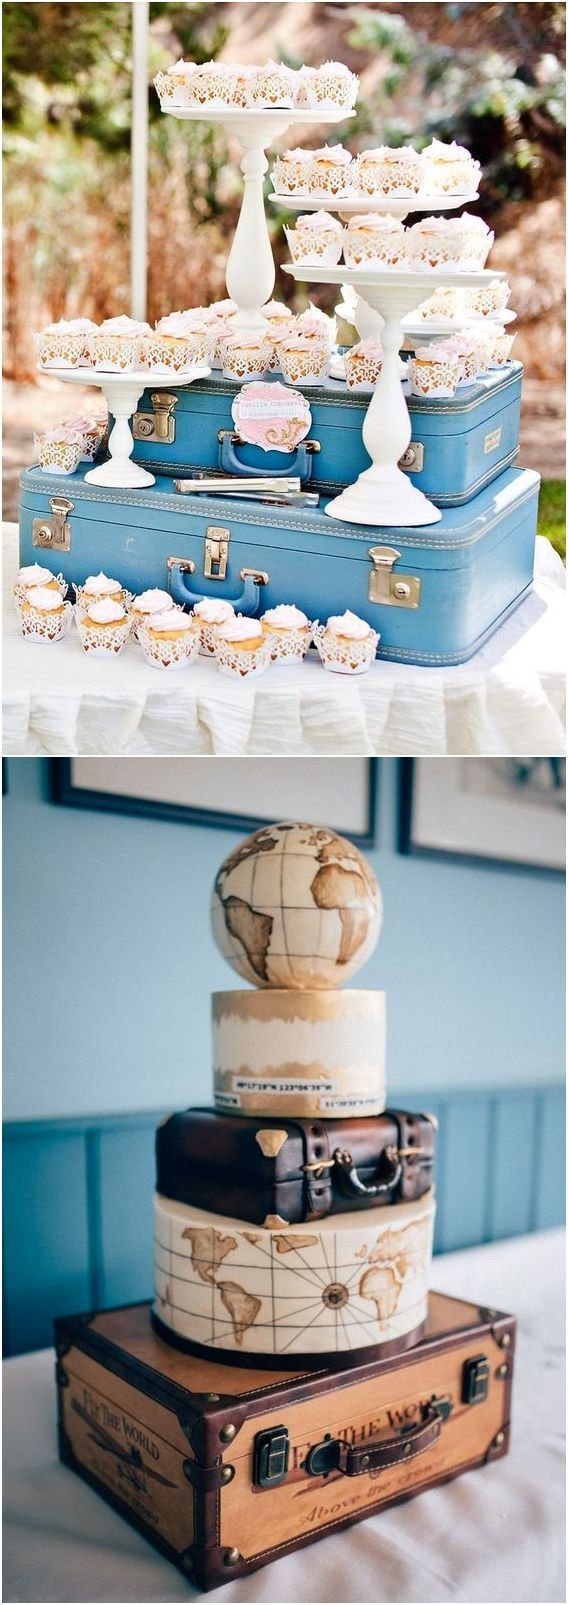 Top 10 Vintage Wedding Trend Ideas for 2019 #vintagesuitcasewedding vintage suitcase wedding decor ideas #weddins #vintages #vintageweddings #weddingideas #vintagesuitcasewedding